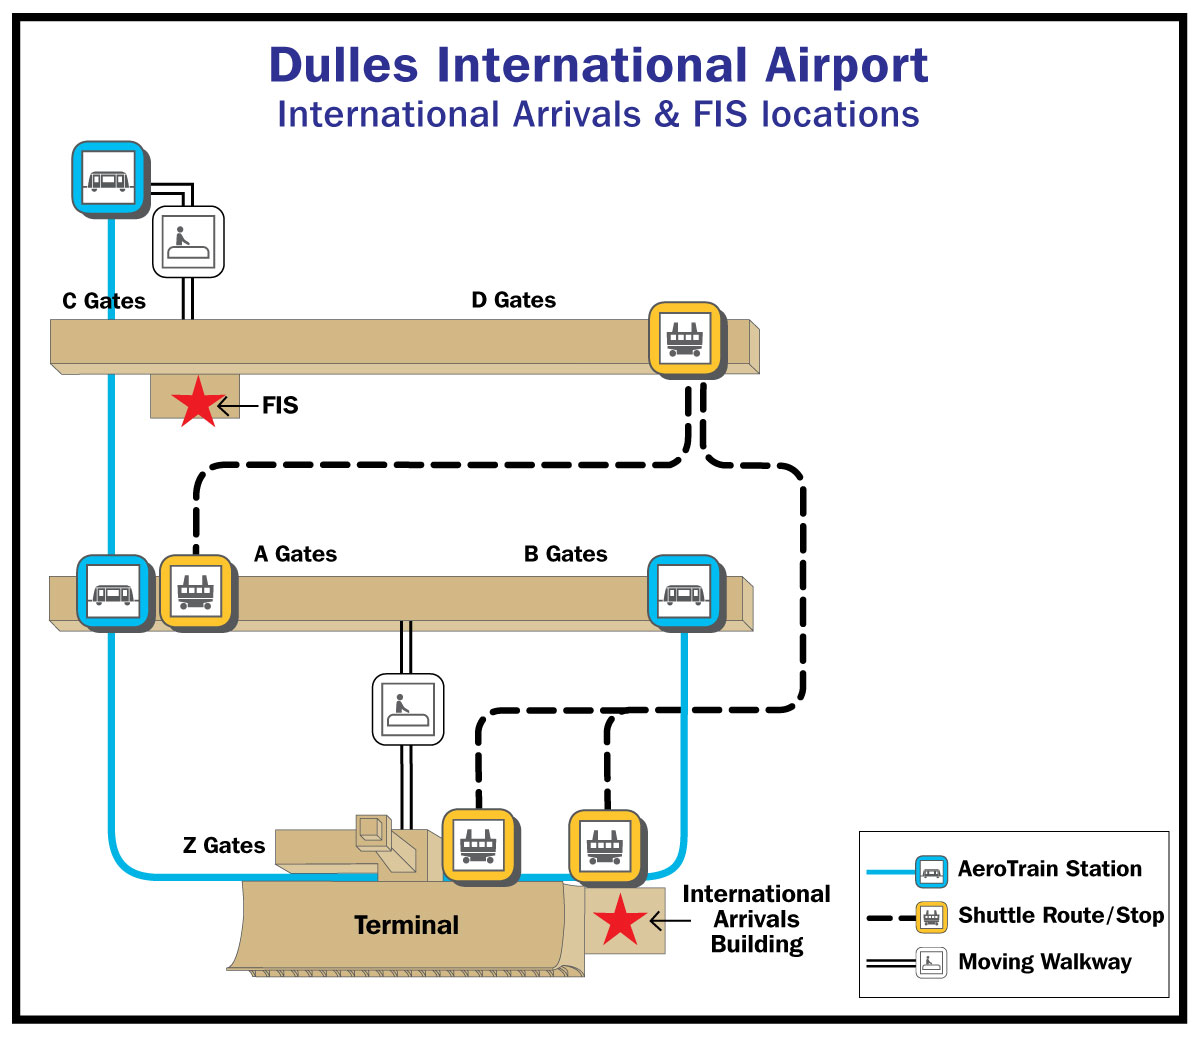 Dulles Airport FIS and IAB Locations